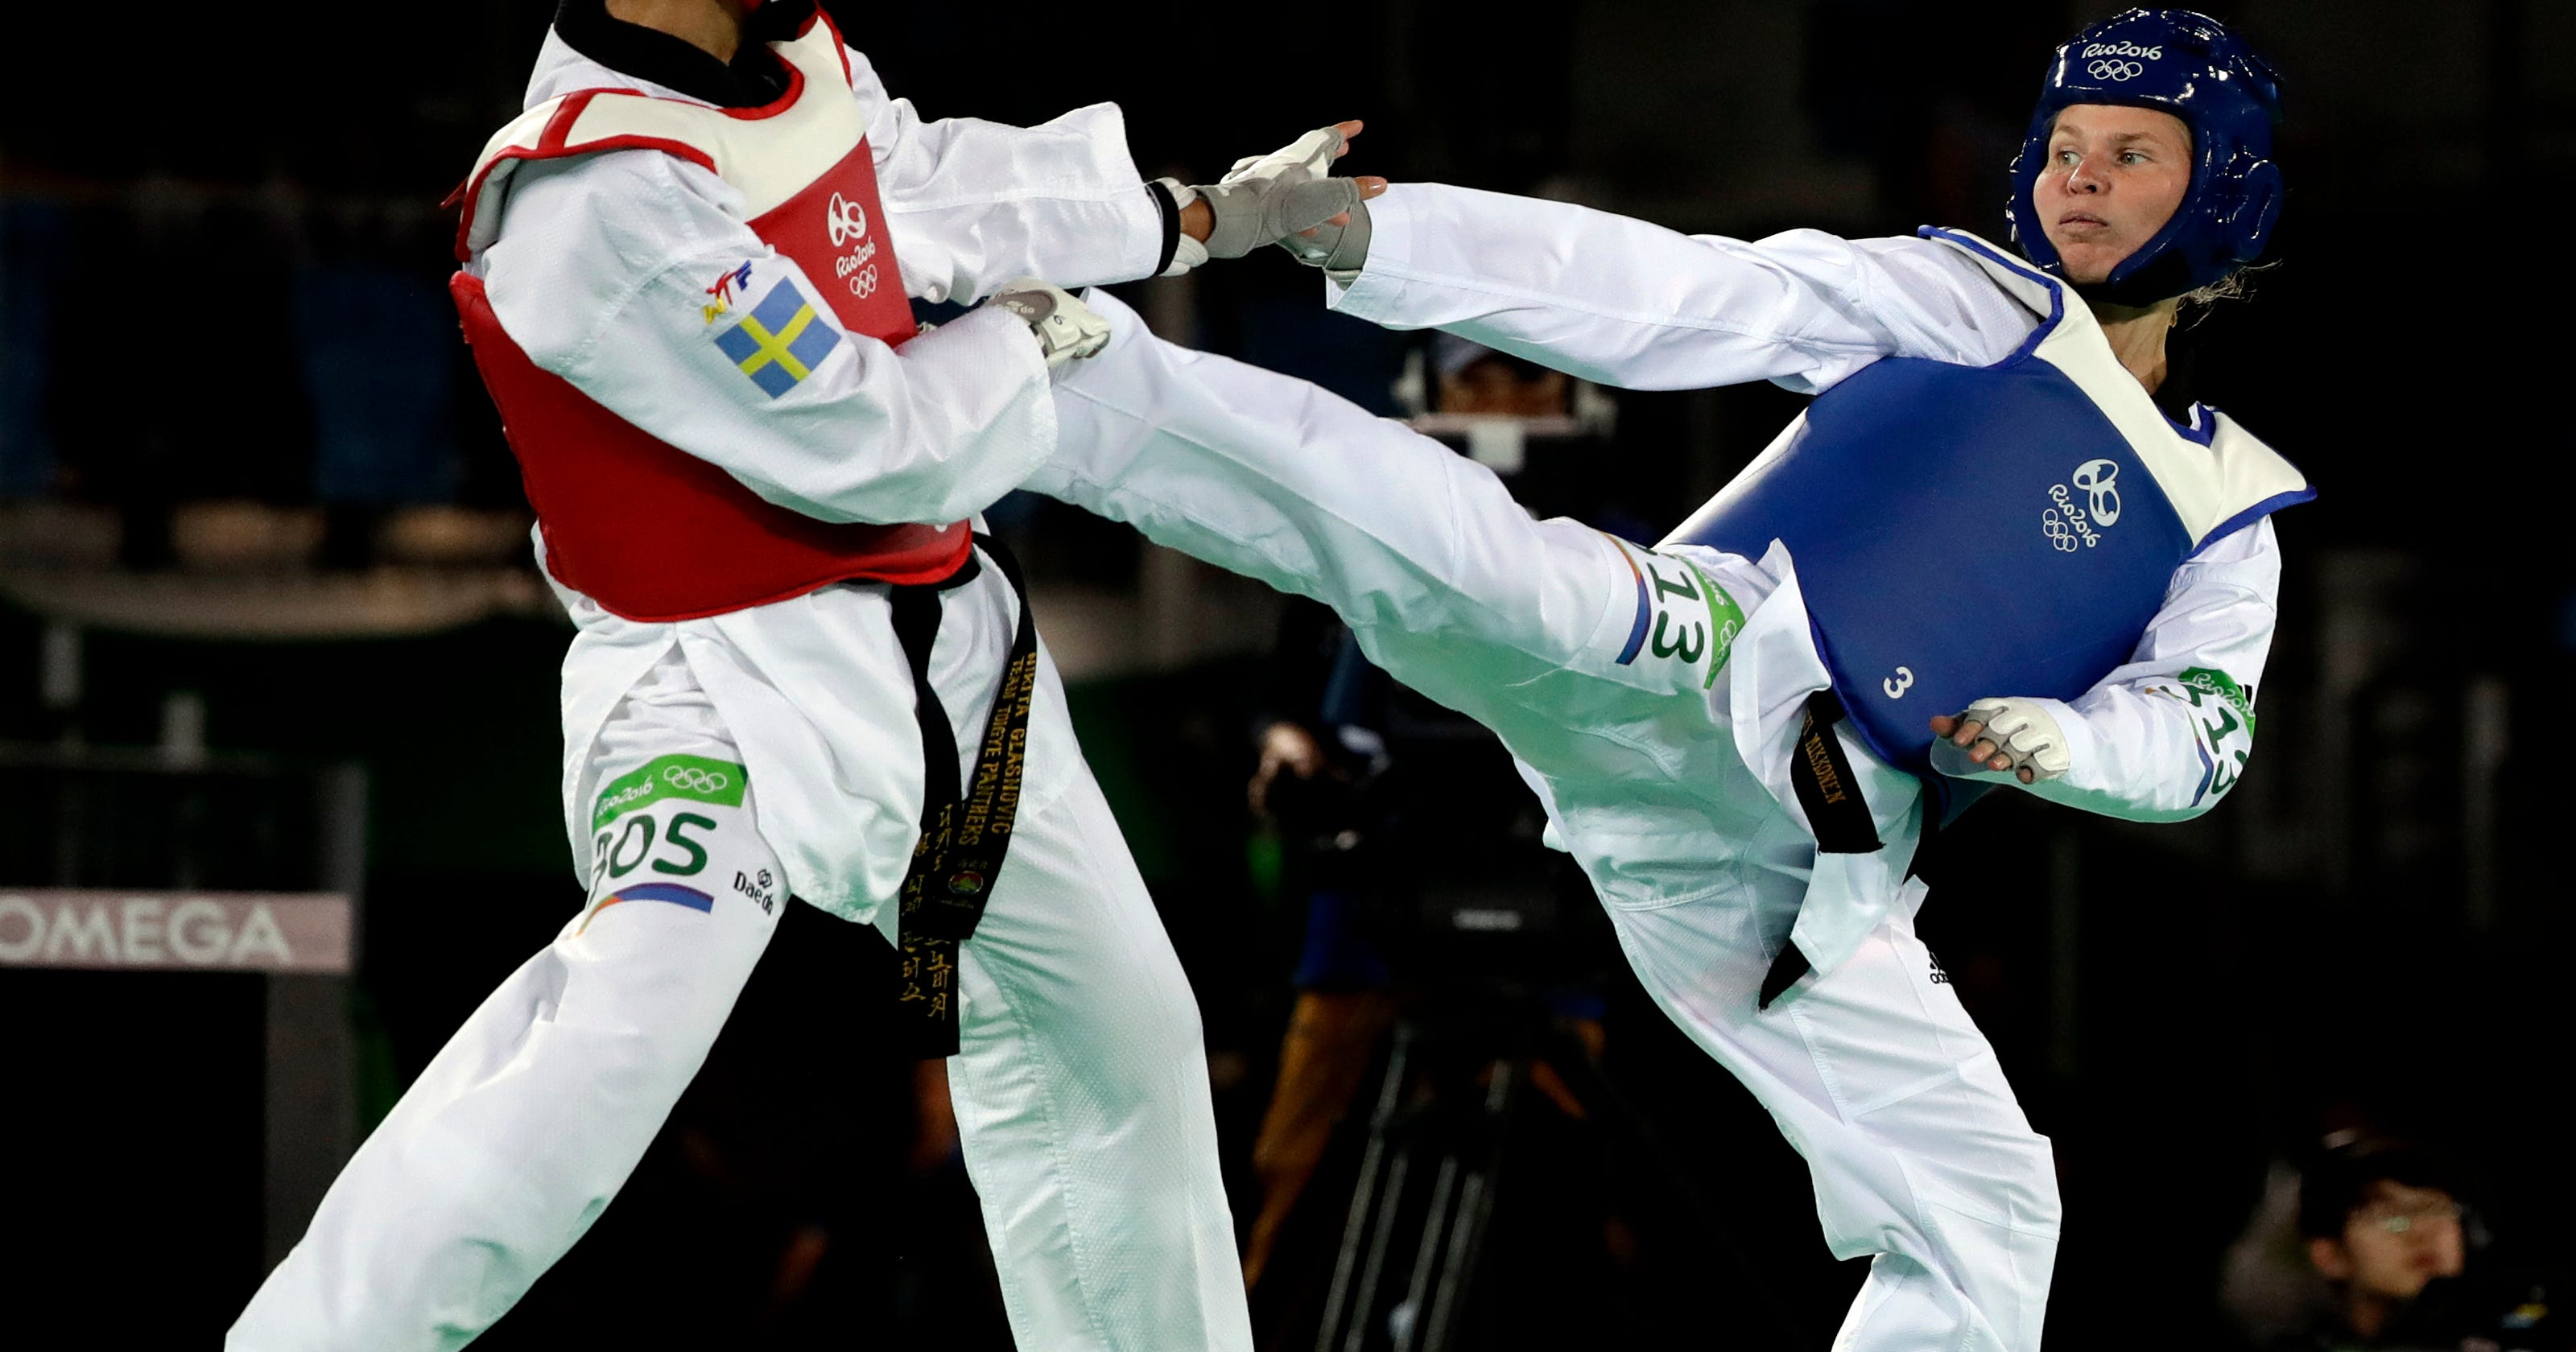 How is taekwondo scored? A guide to the Olympic sport